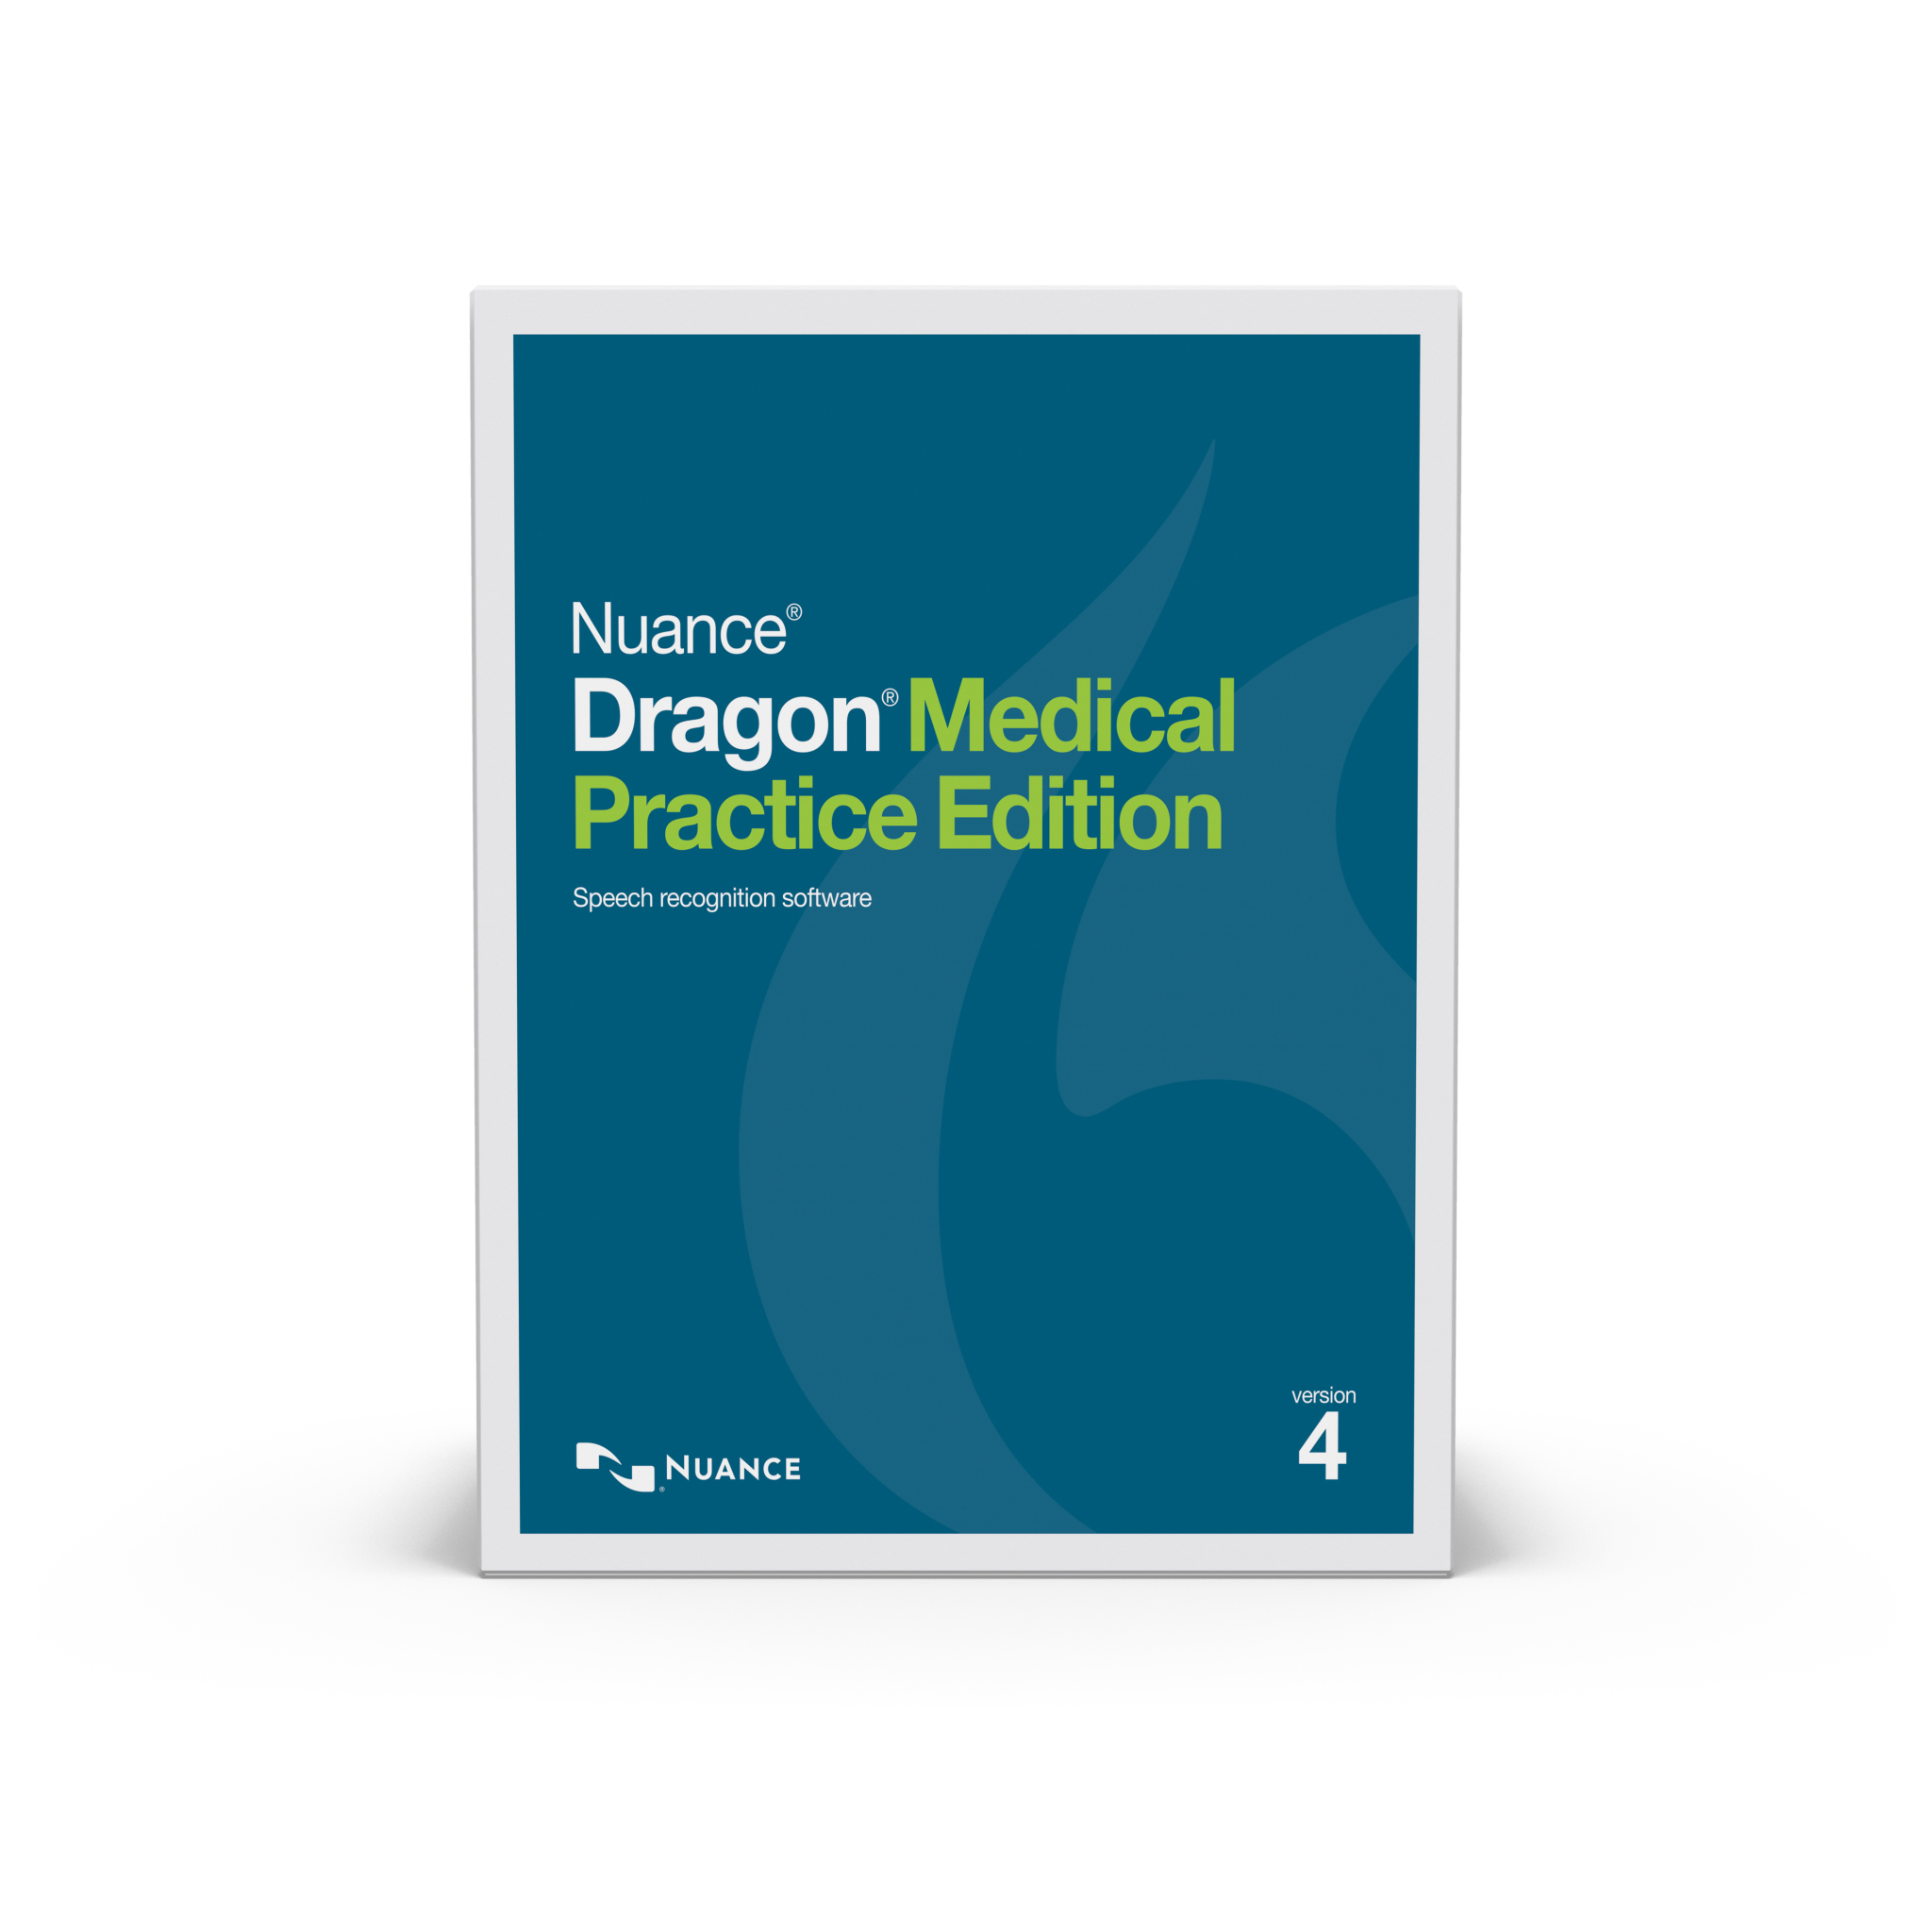 NUA-A789A-RC8-4.0 DRAGON MEDICAL PRACTICE EDITION 4, UPGRADE FROM DRAGON MEDICAL PRACTICE EDITION 2 ONLY